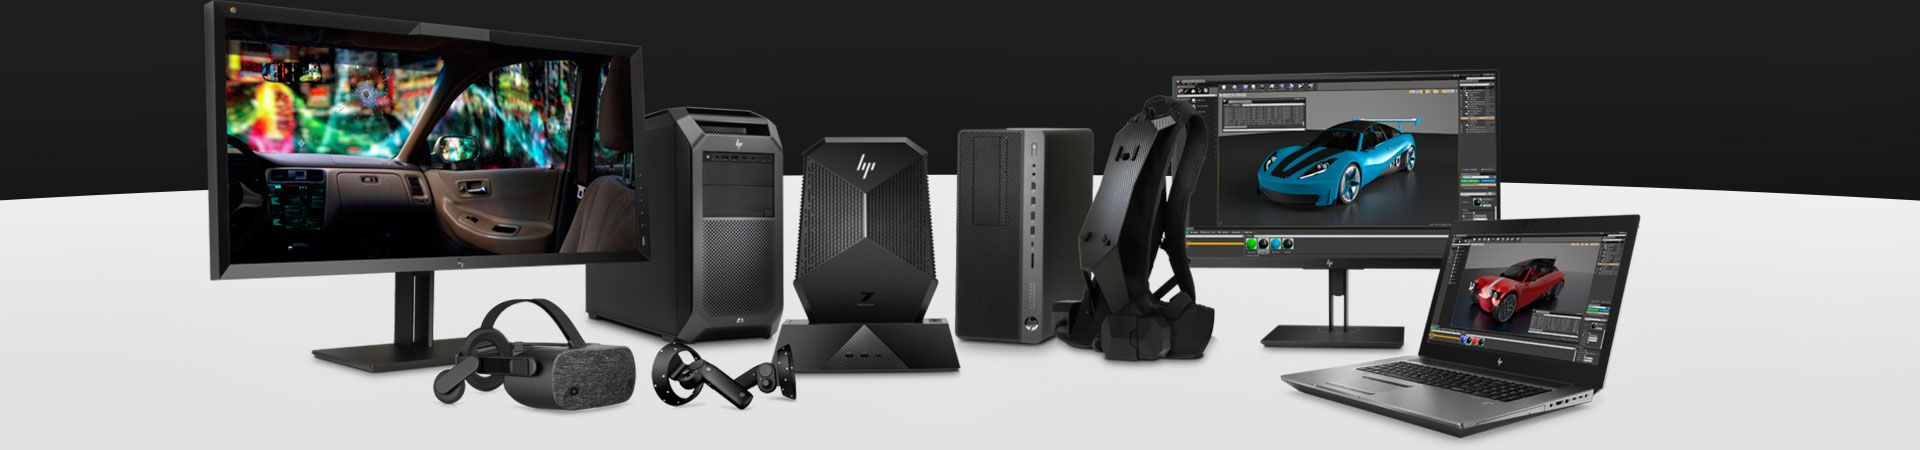 HP Family of VR ready products